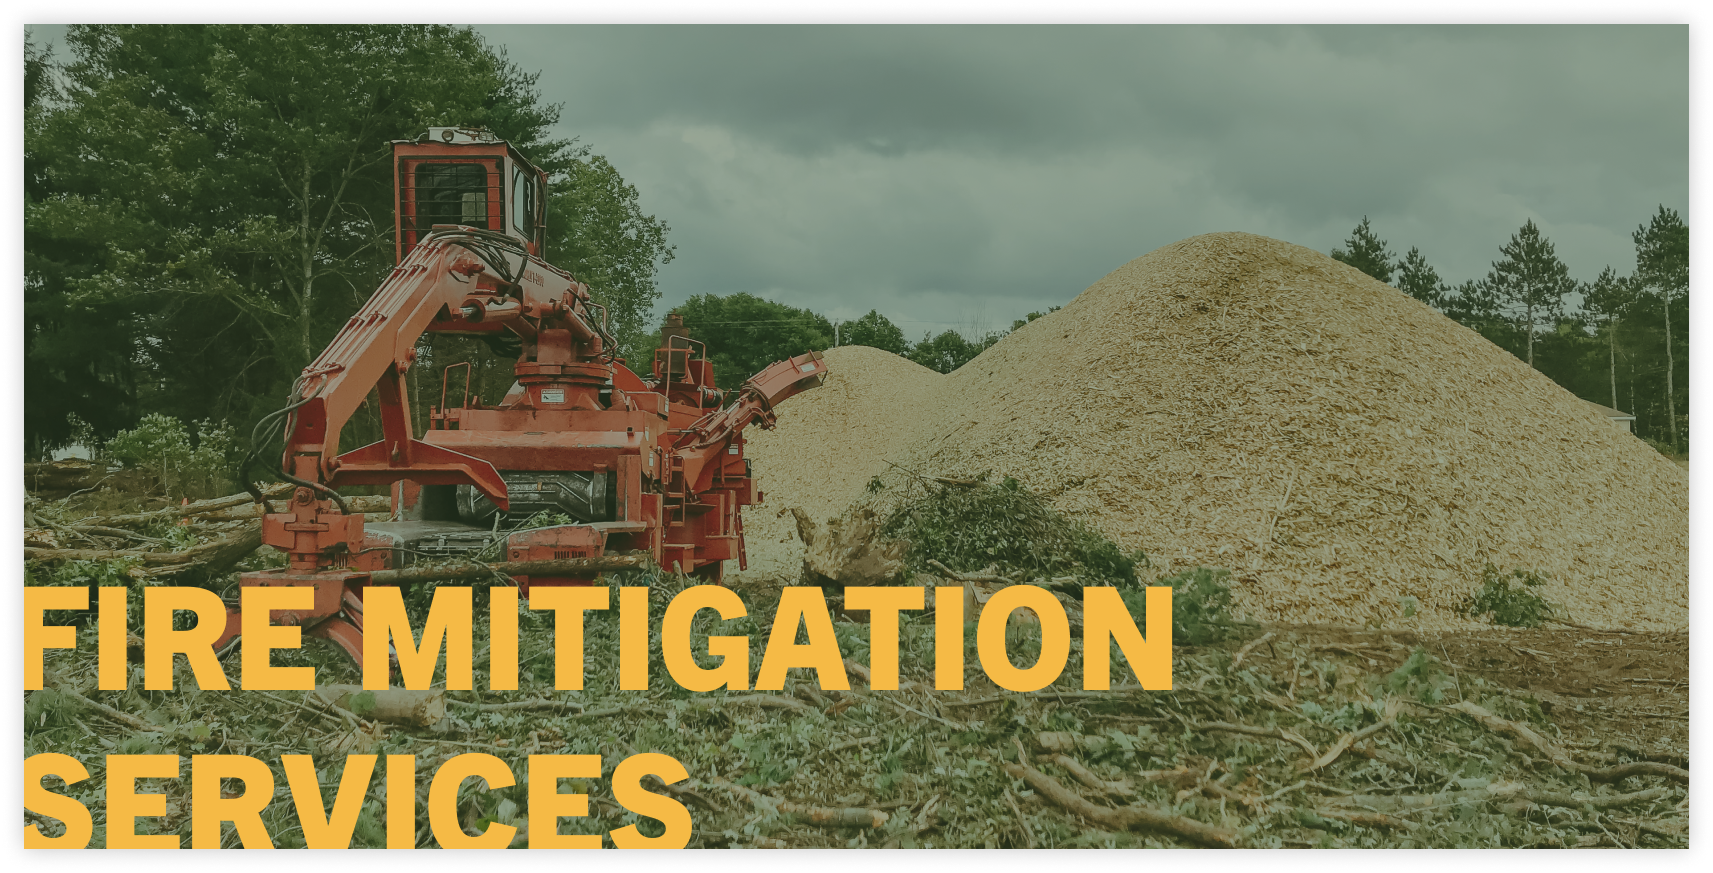 tree clearing service fire mitigation